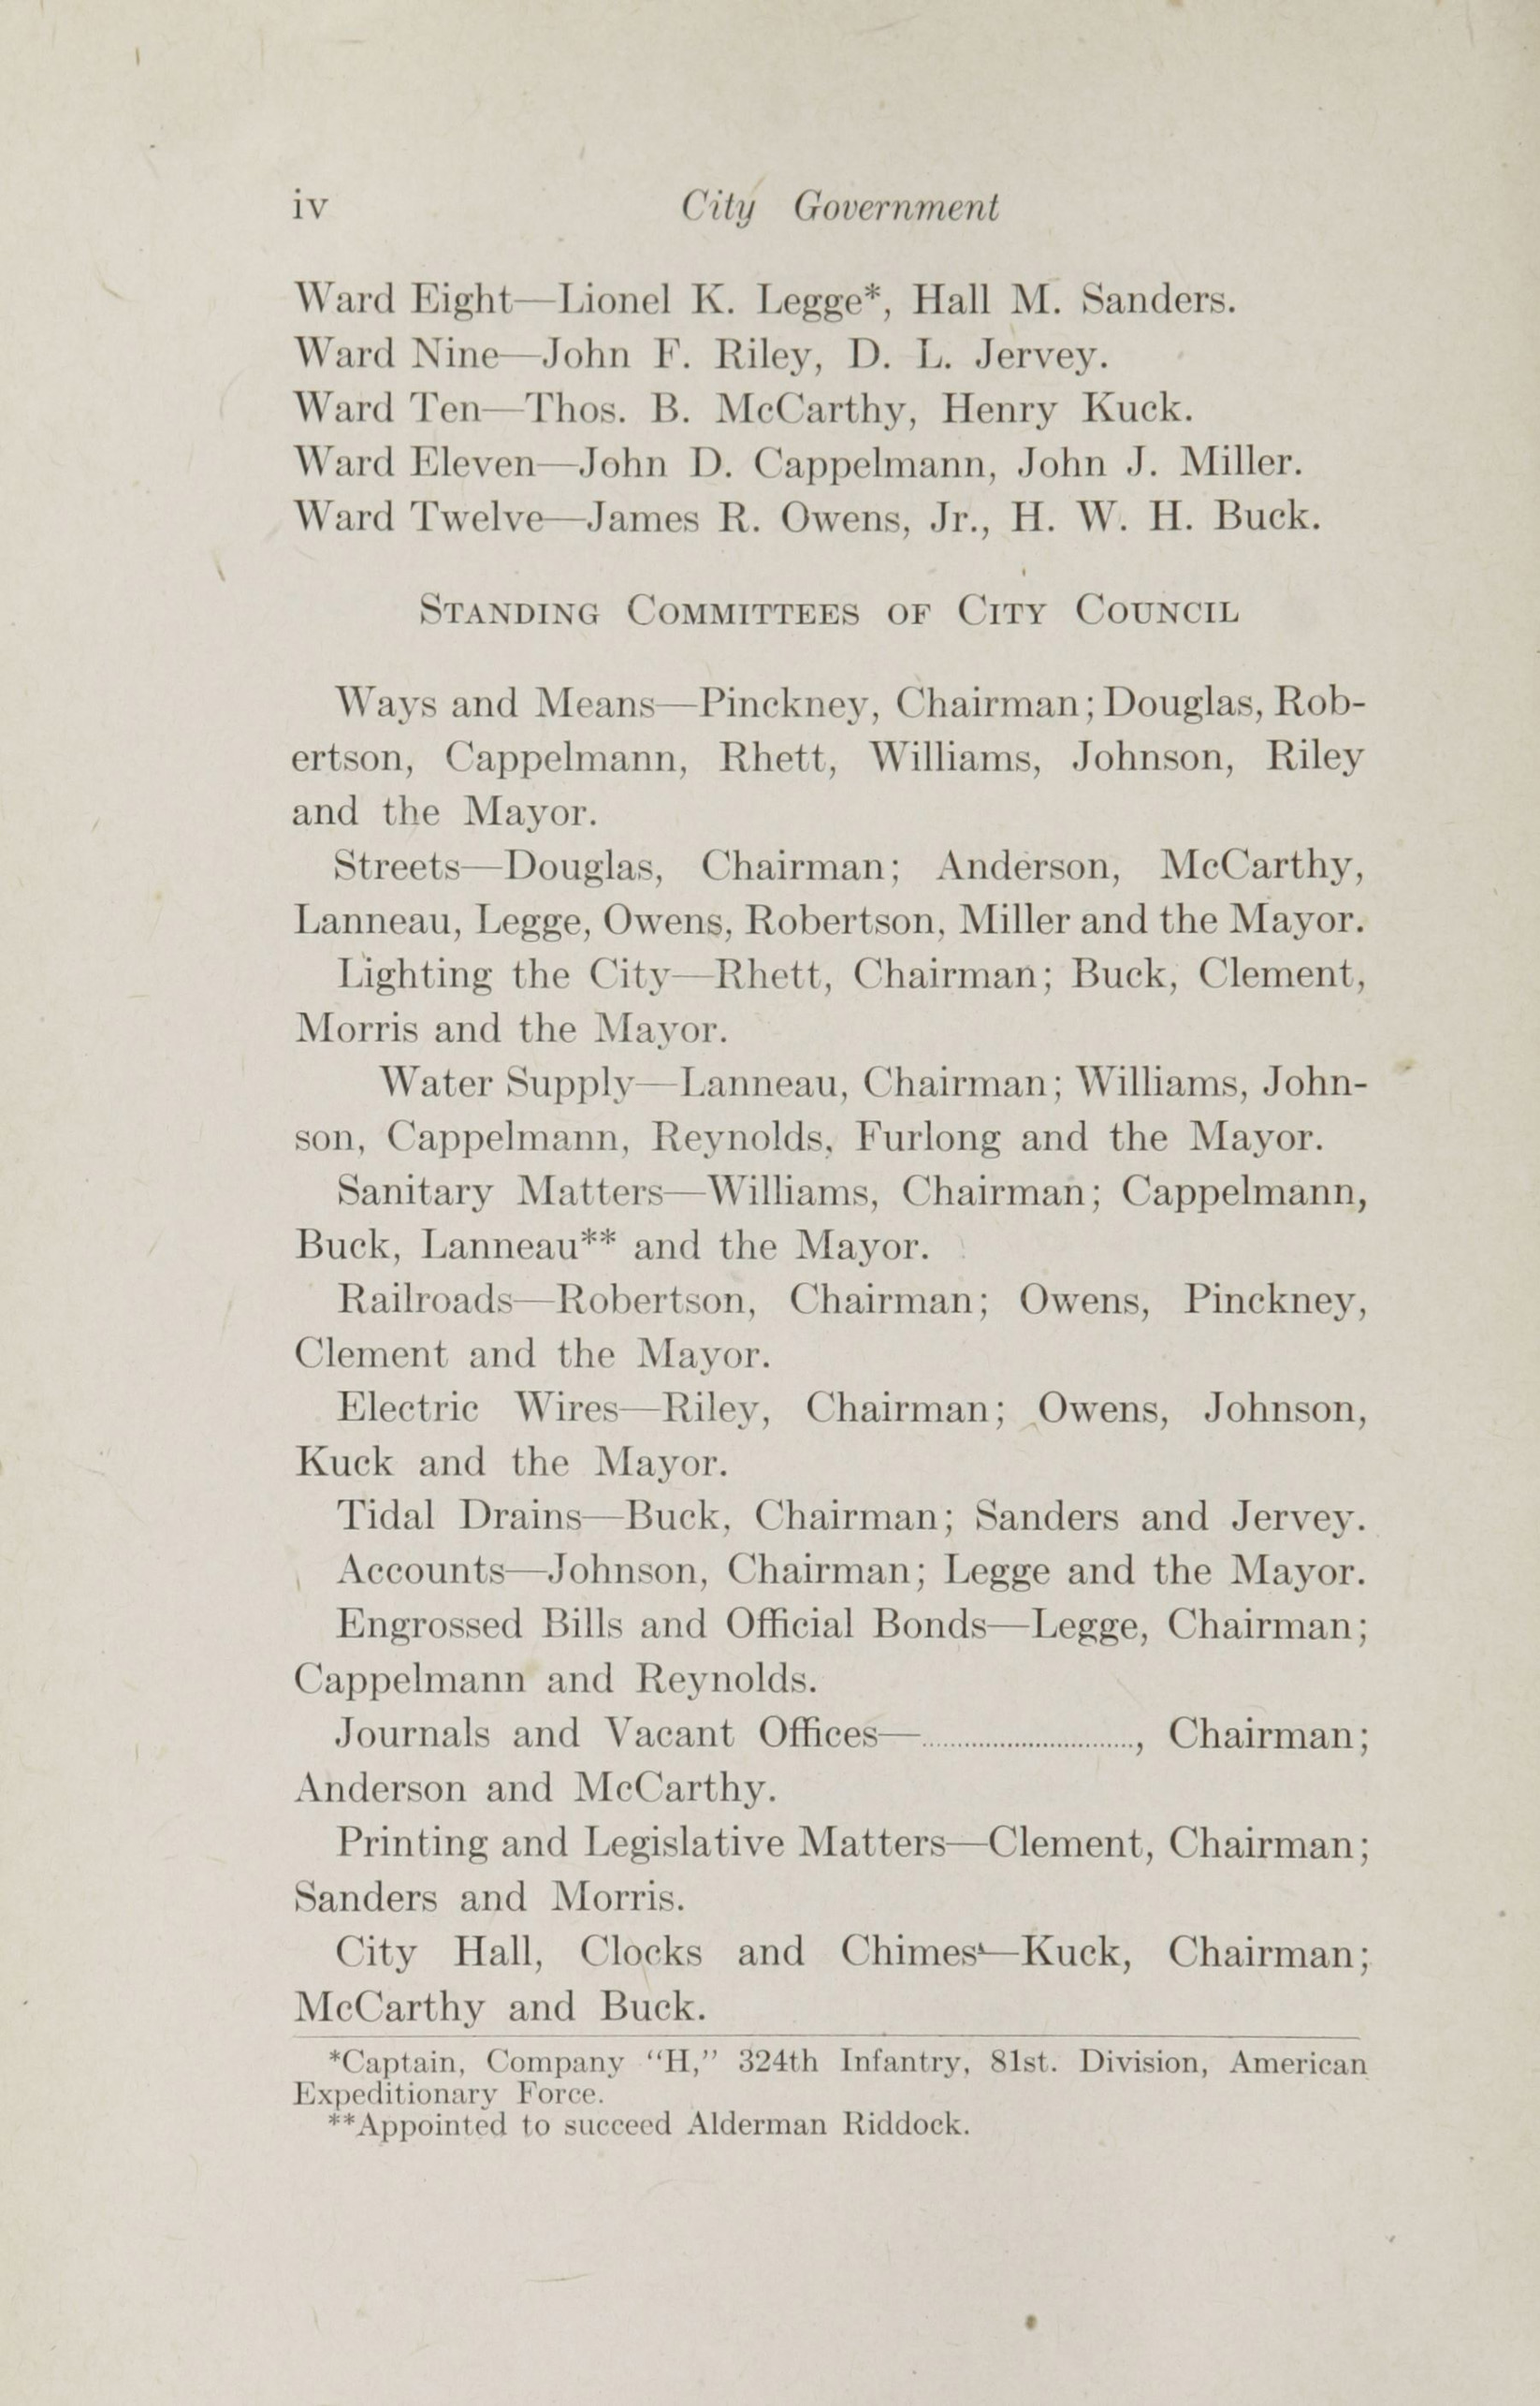 Charleston Yearbook, 1918, page iv